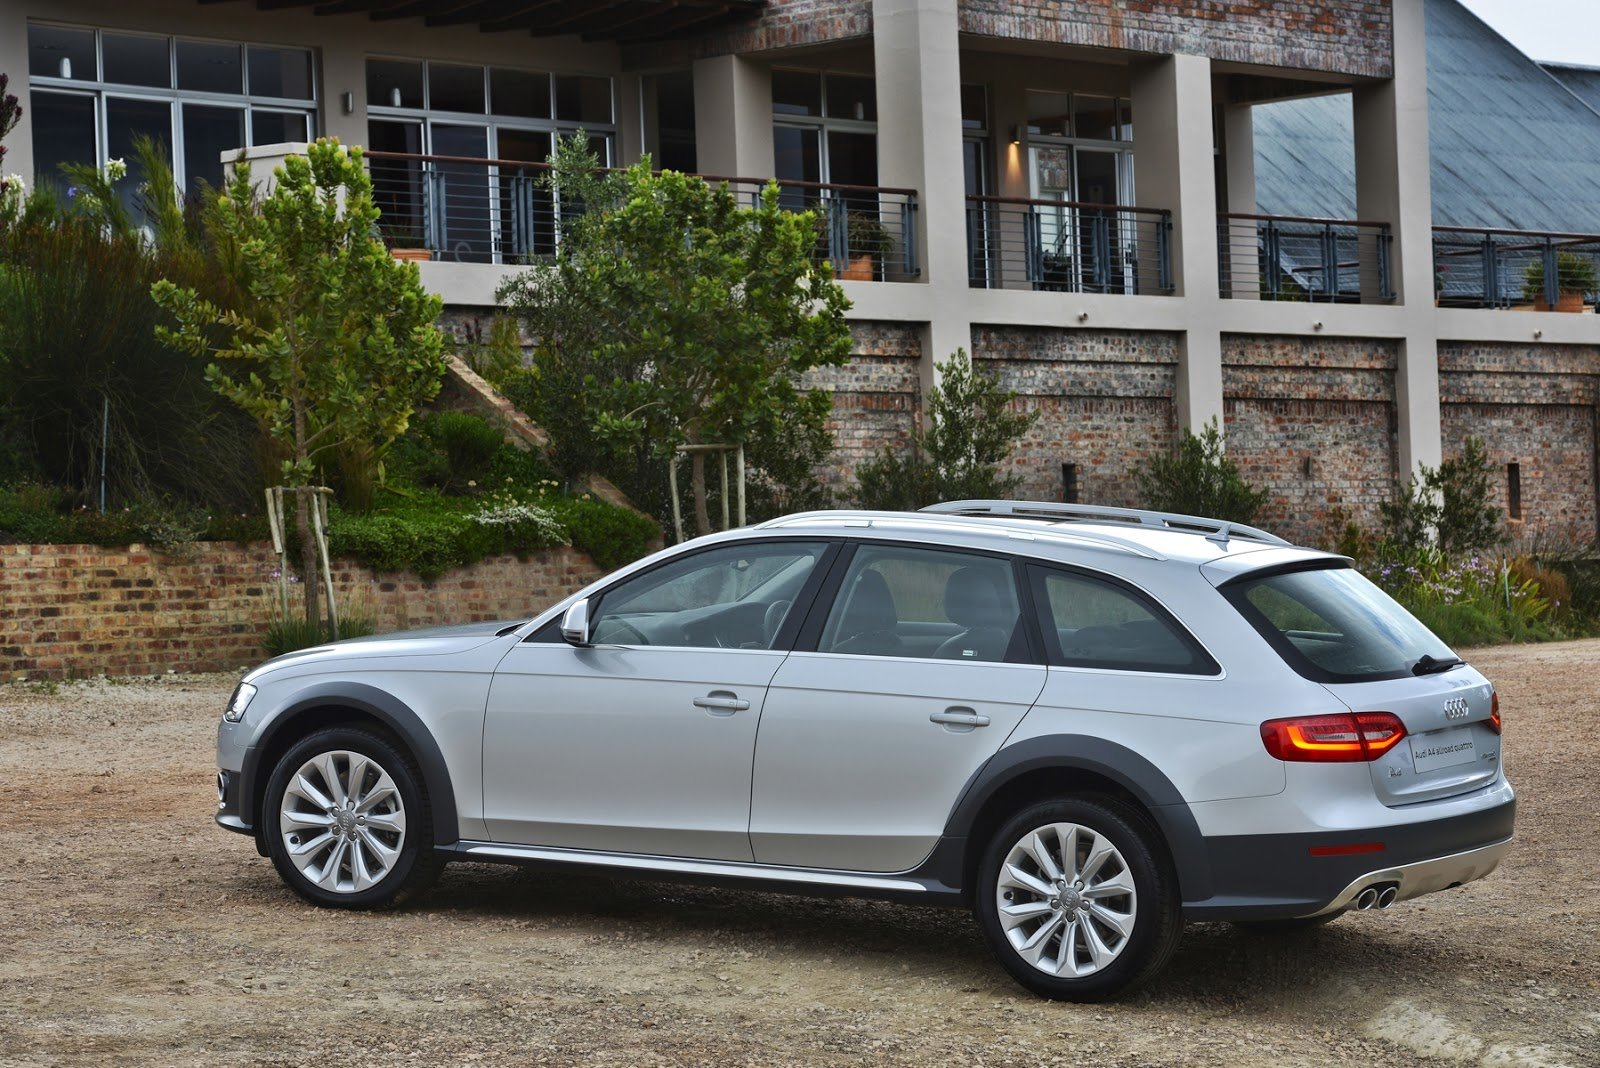 Latest All Cars Logo Hd Audi A4 Allroad For All Mzansi Roads Free Download